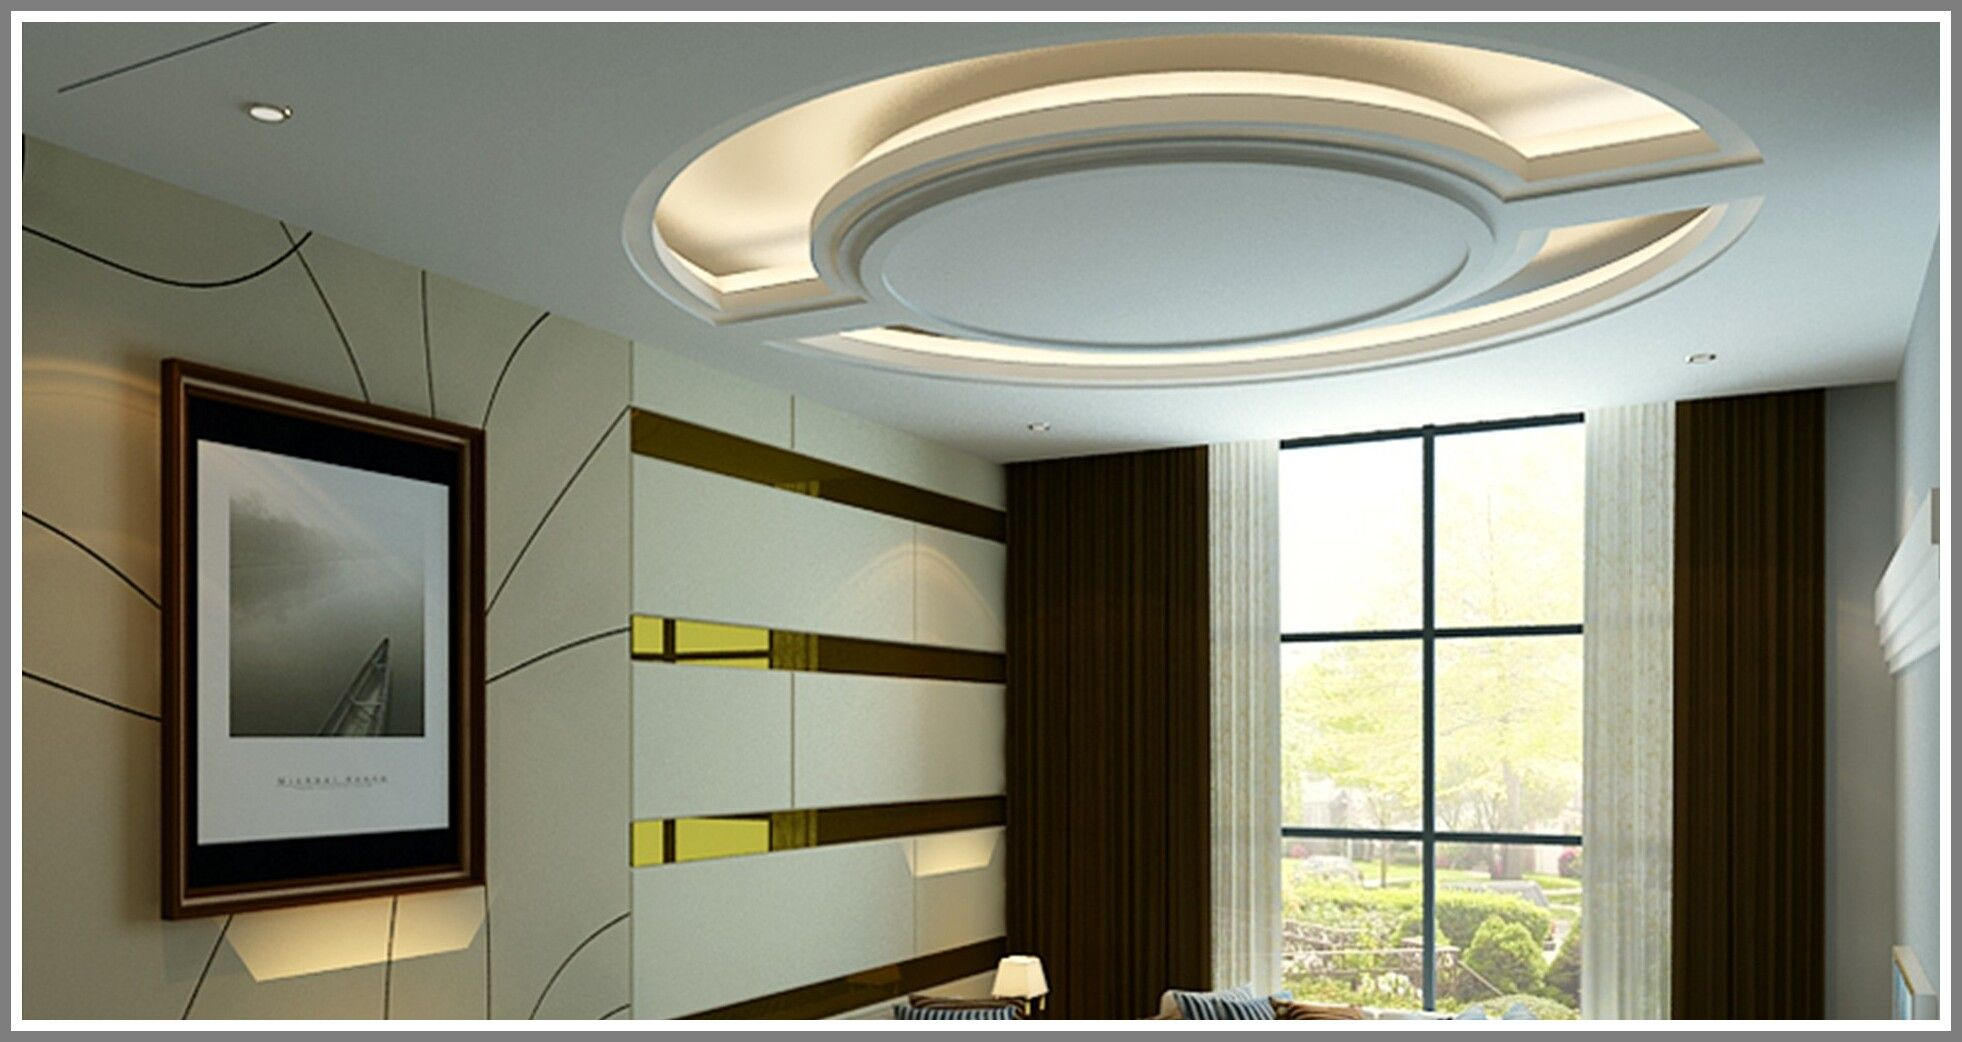 34 Reference Of Ceiling Light Ideas Without False Ceiling In